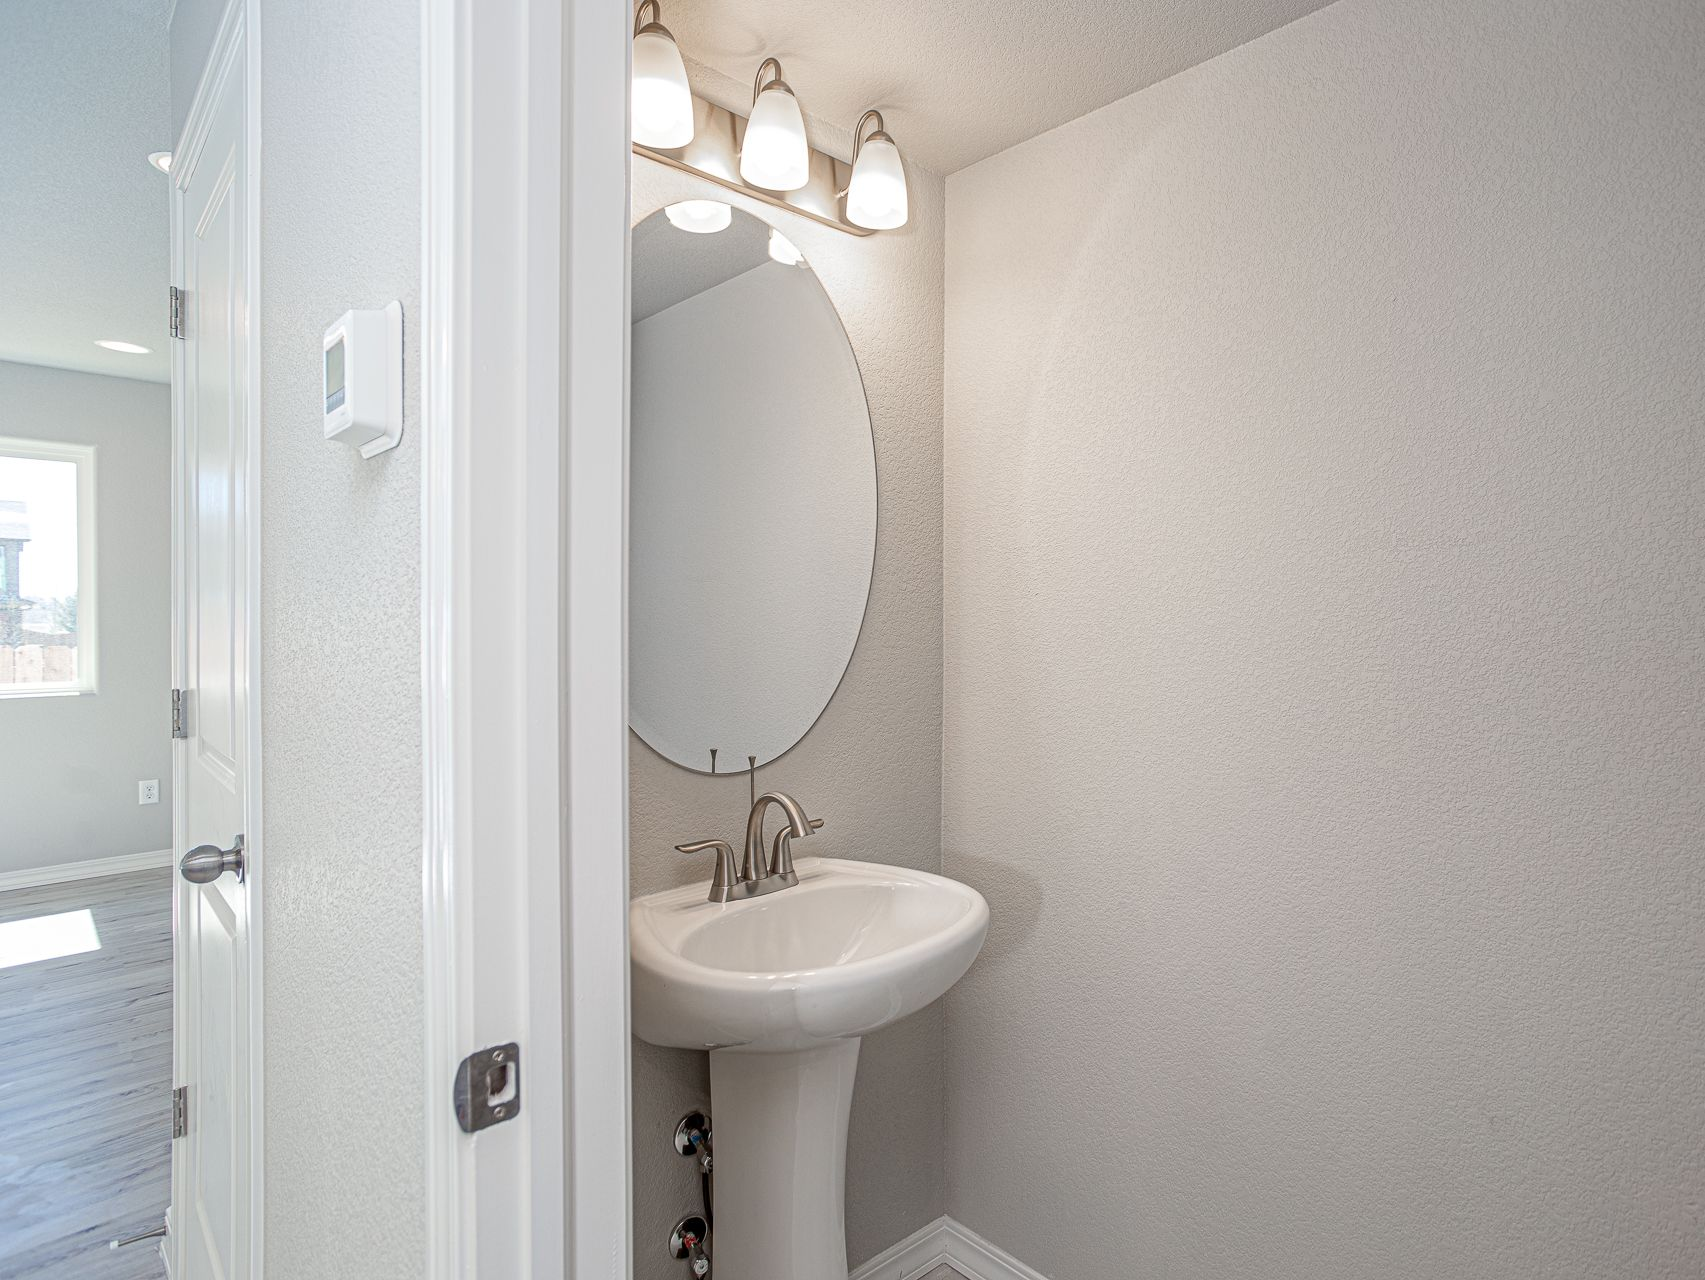 Bathroom featured in The Belford By Challenger Homes in Colorado Springs, CO